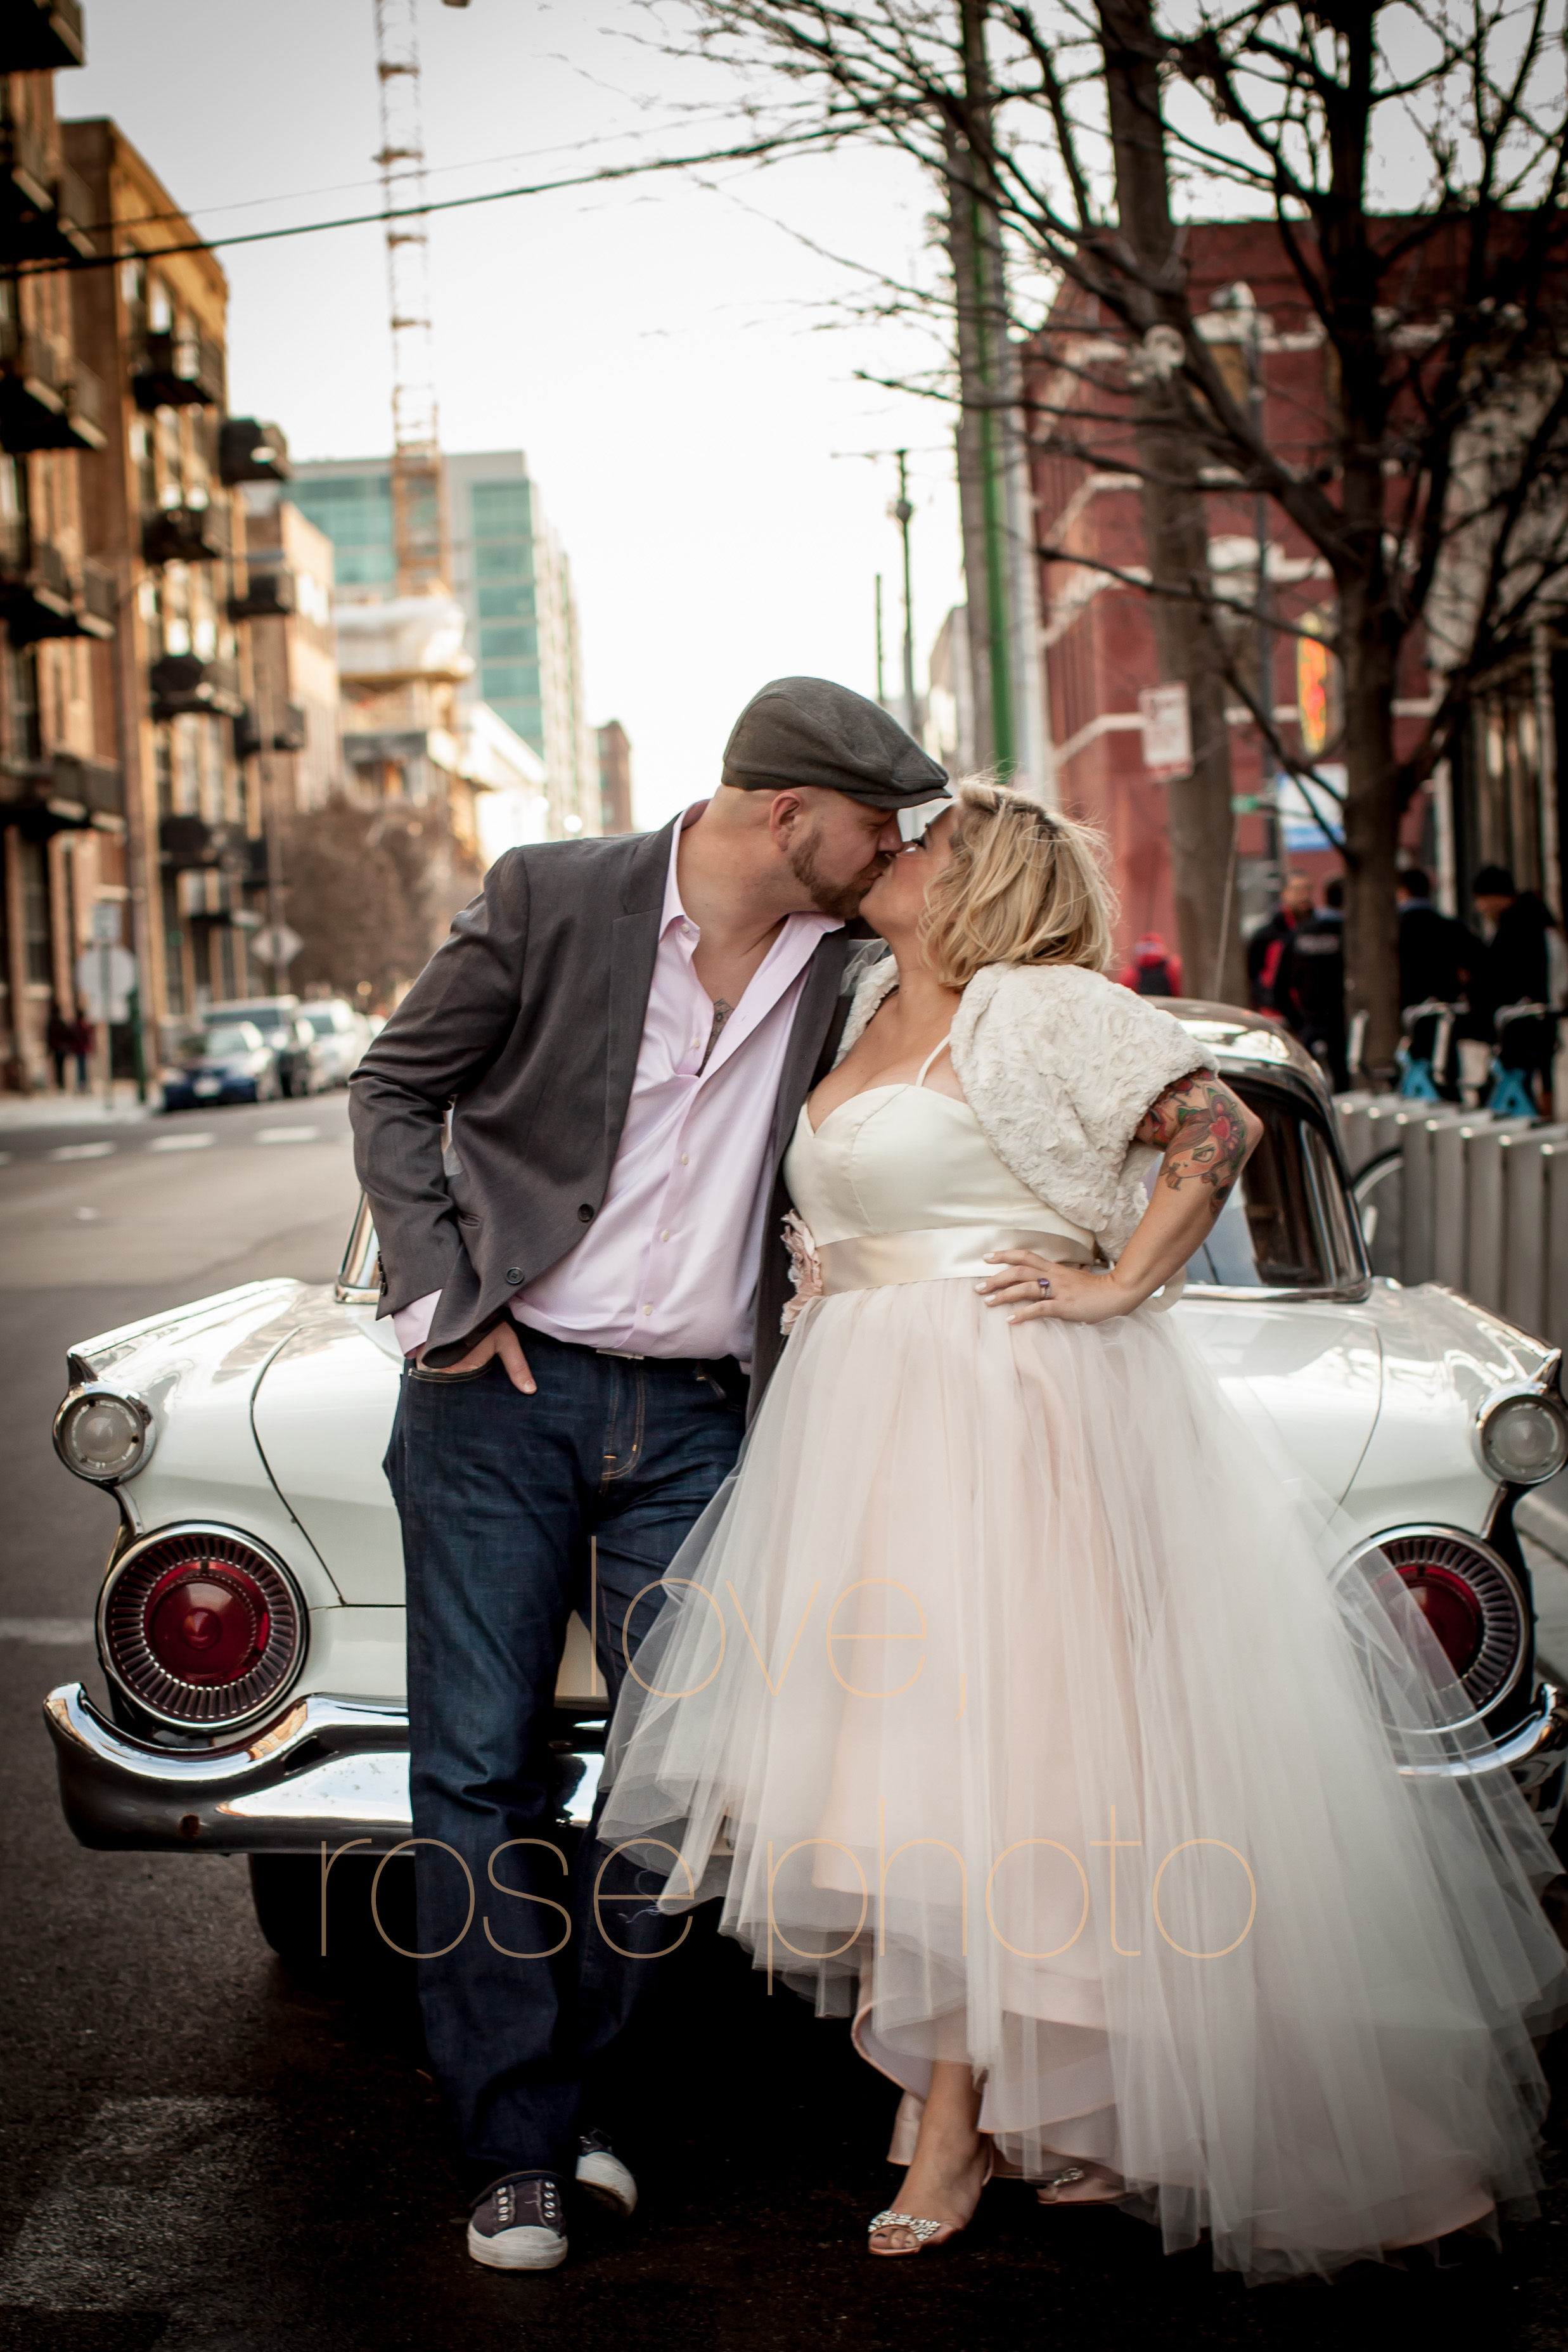 nikki + mike west loop vintage classic throwback pinup rock and roll tattoo photoshoot engagement wedding photo shoot-014.jpg